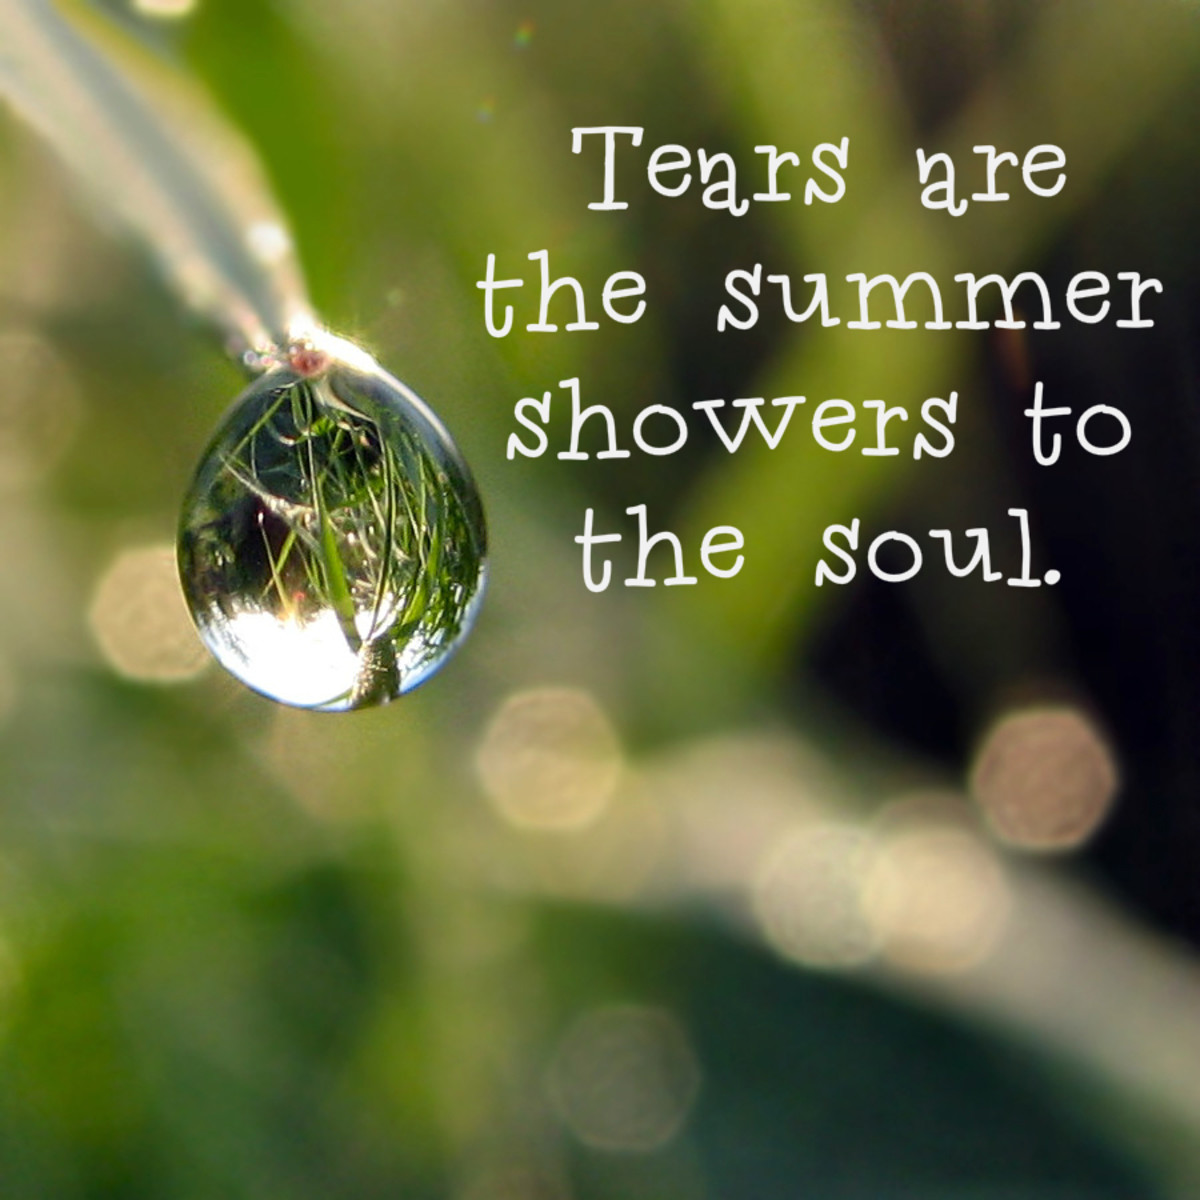 """Tears are the summer showers to the soul."" - Alfred Austin, English poet"